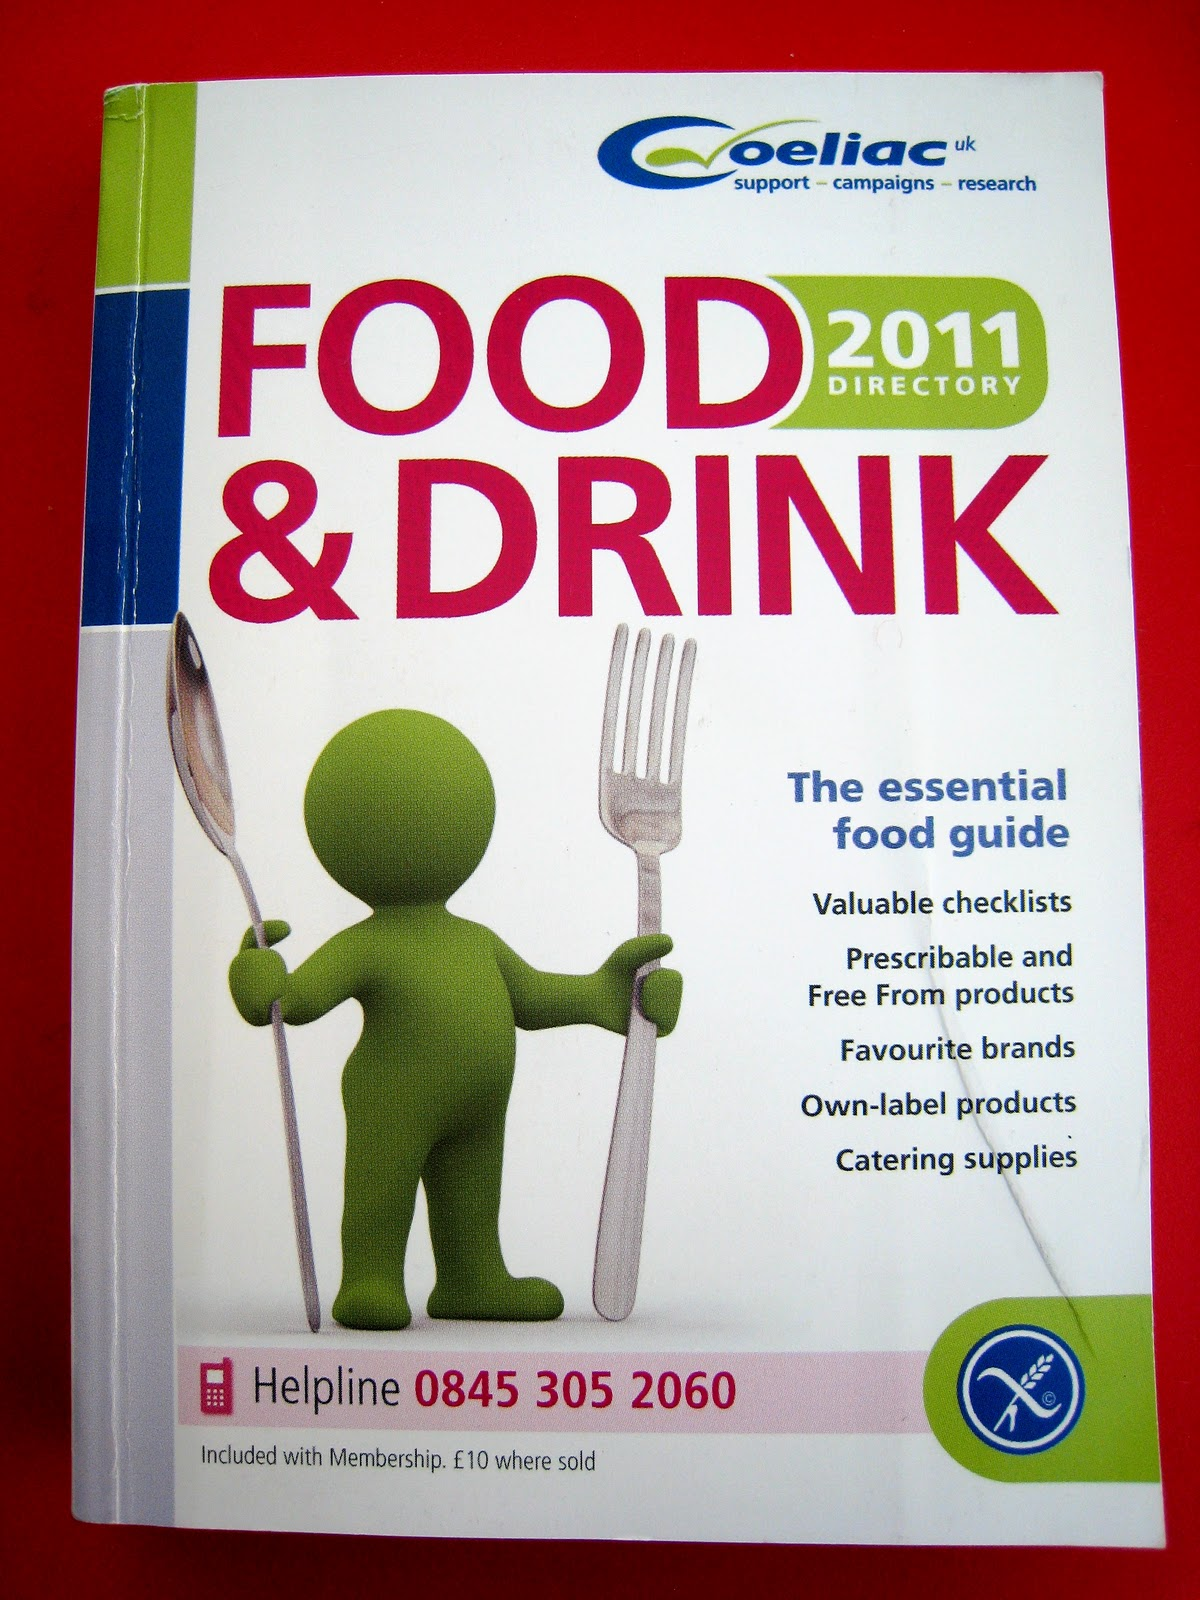 Gluten Free Malt Drinks http://www.glutenfreekidstravel.com/2011/10/british-celiacs-eat-some-forms-of.html#!